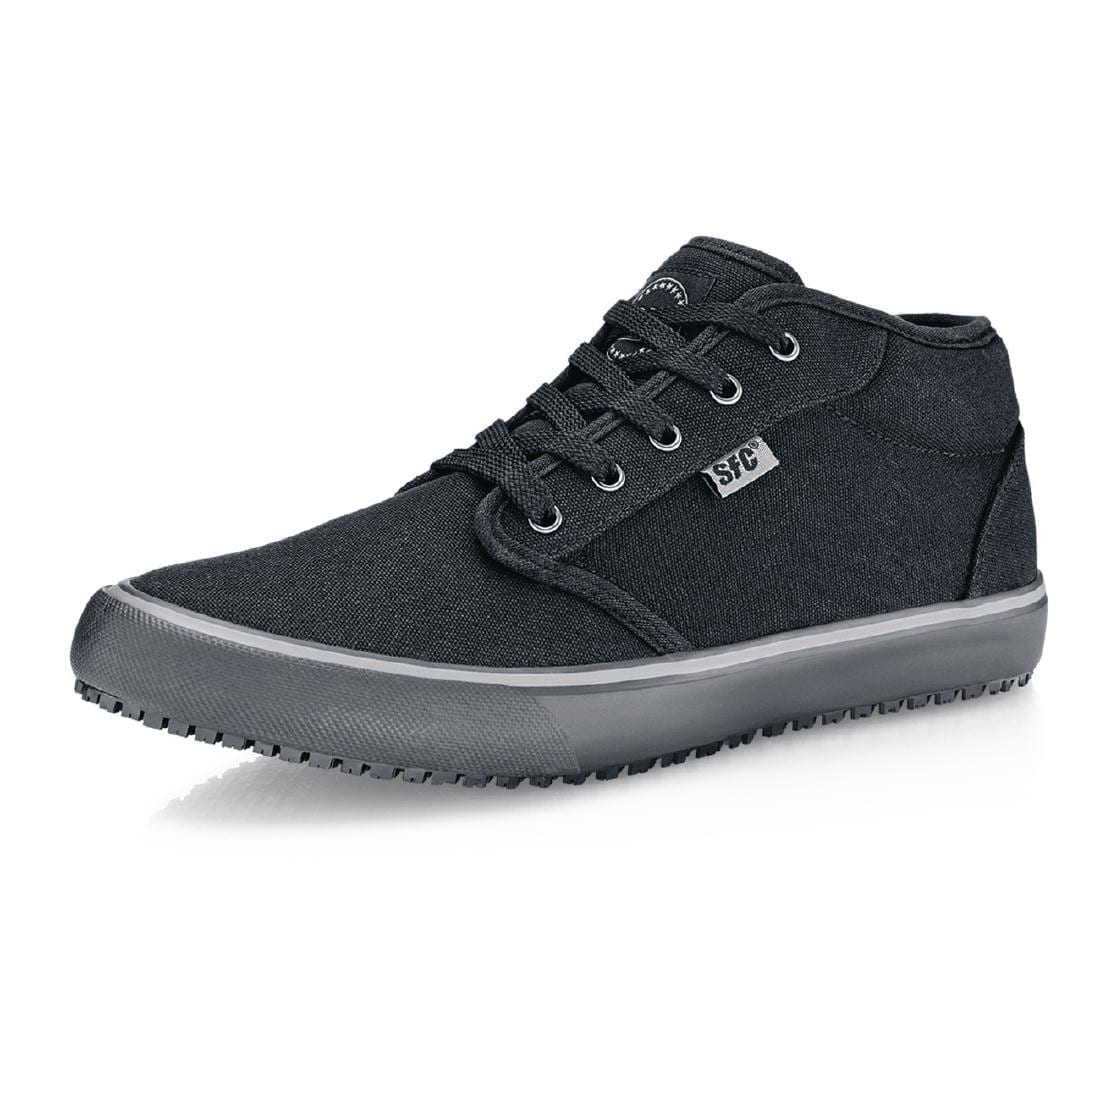 Shoes For Crews Coated Canvas Lace up Boot - Size 36-0